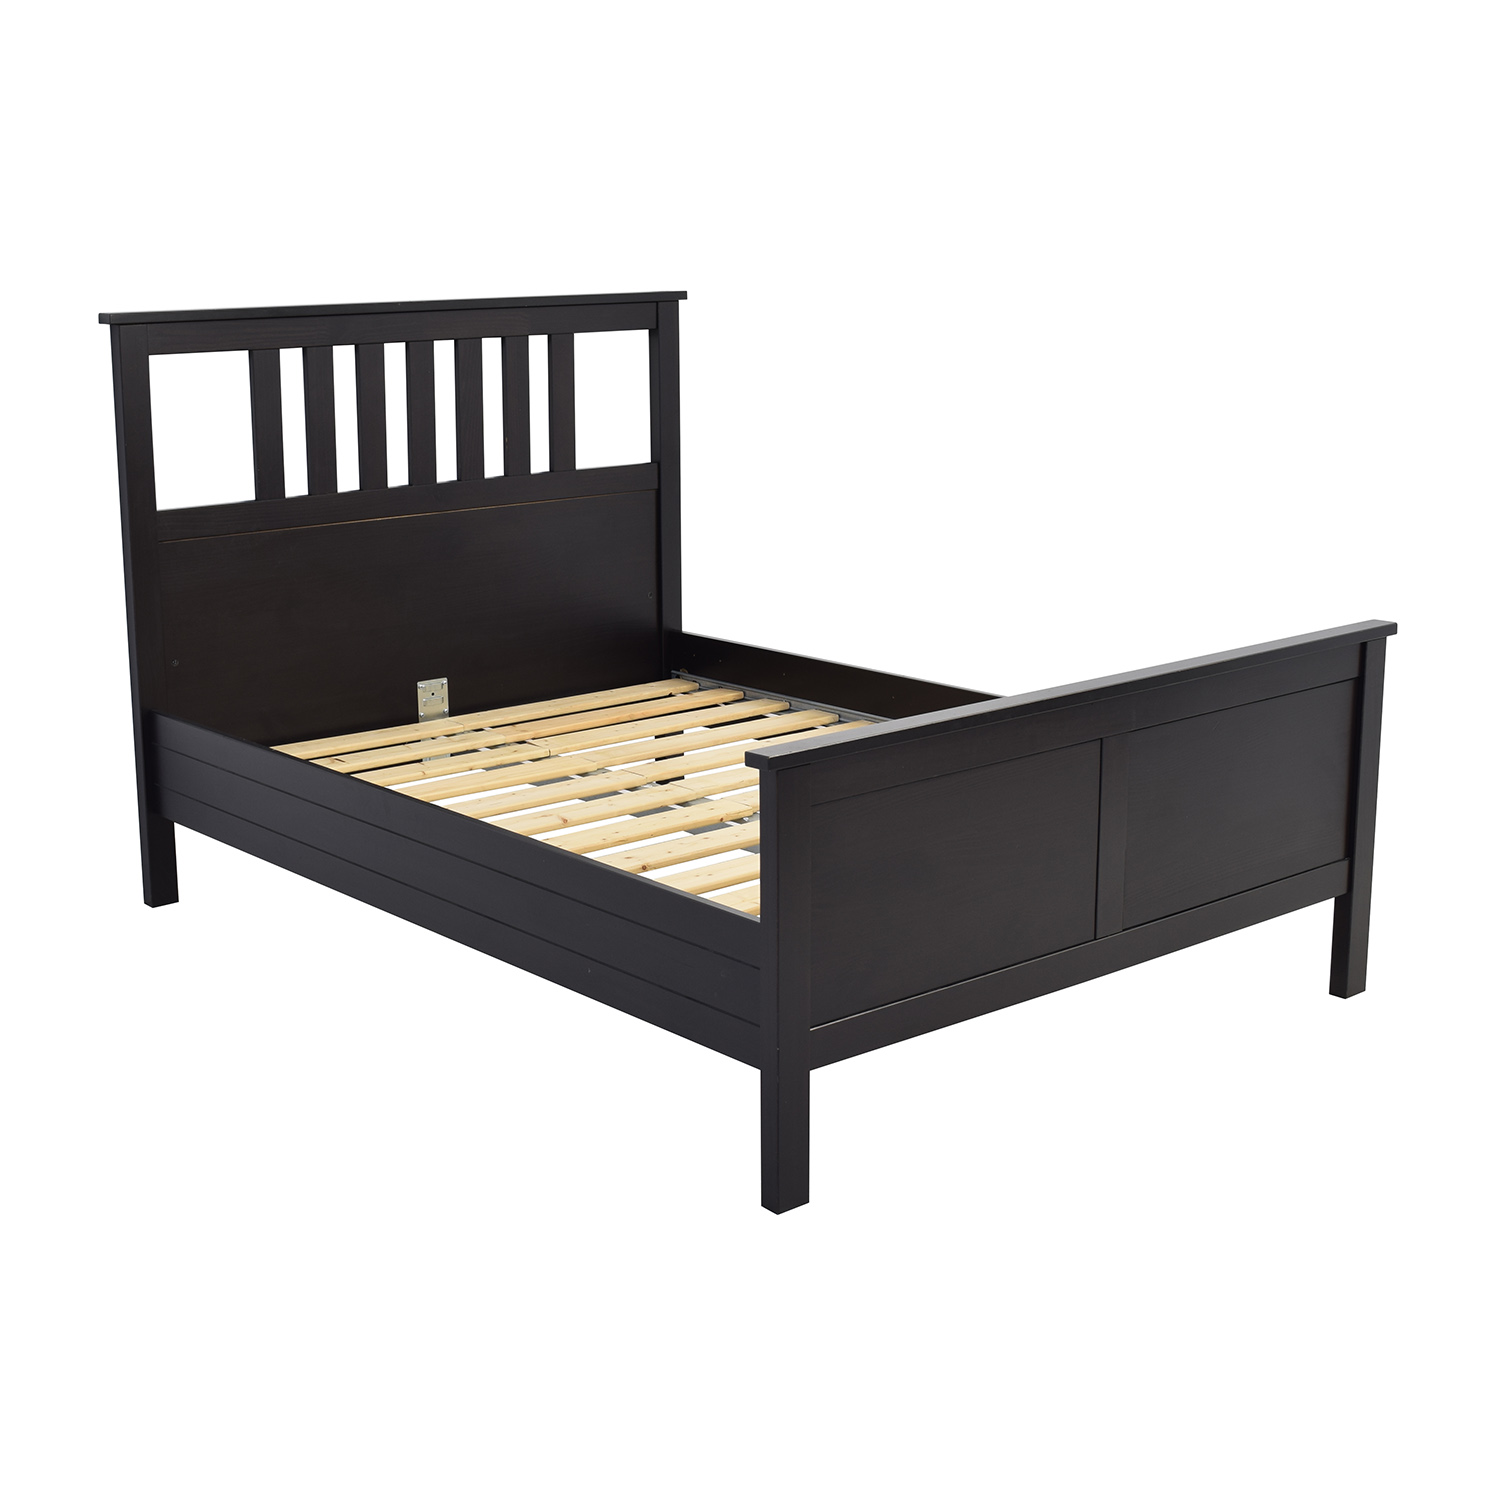 Wood bed frame queen howtoword design ideas for Queen bed frame